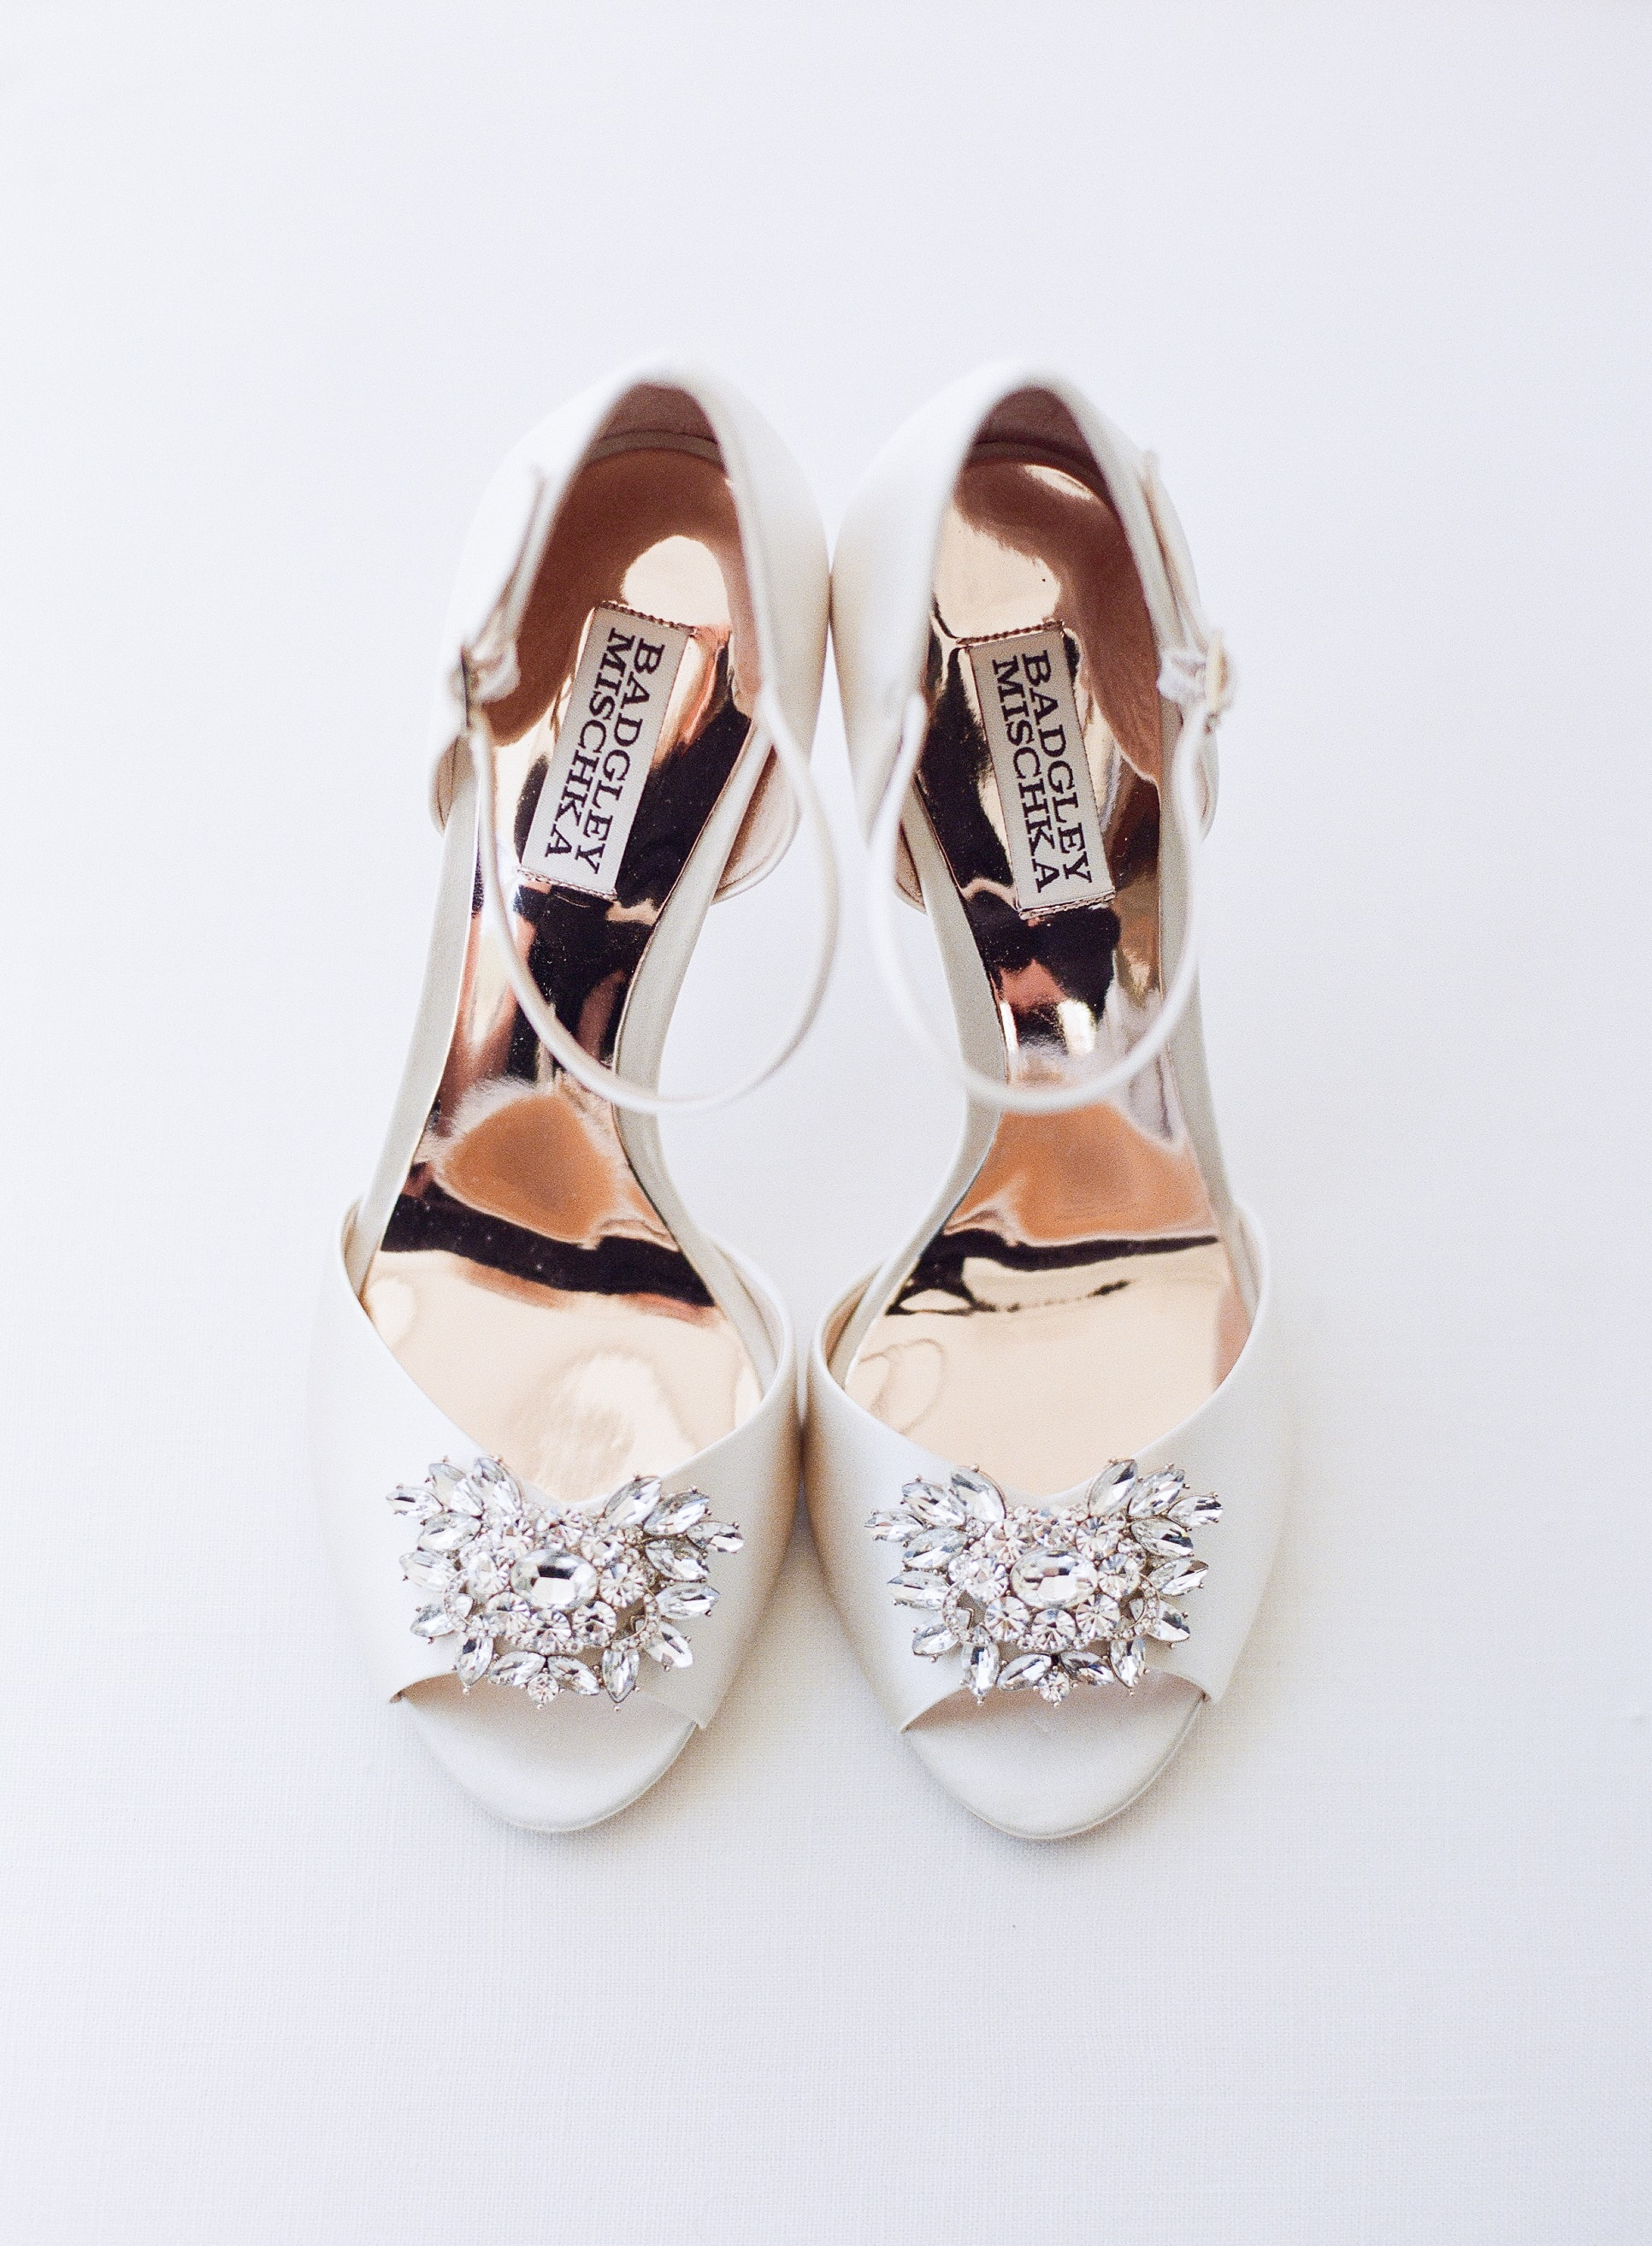 Amazing detail shot of bridal shoes captured by Almond Lear Studios